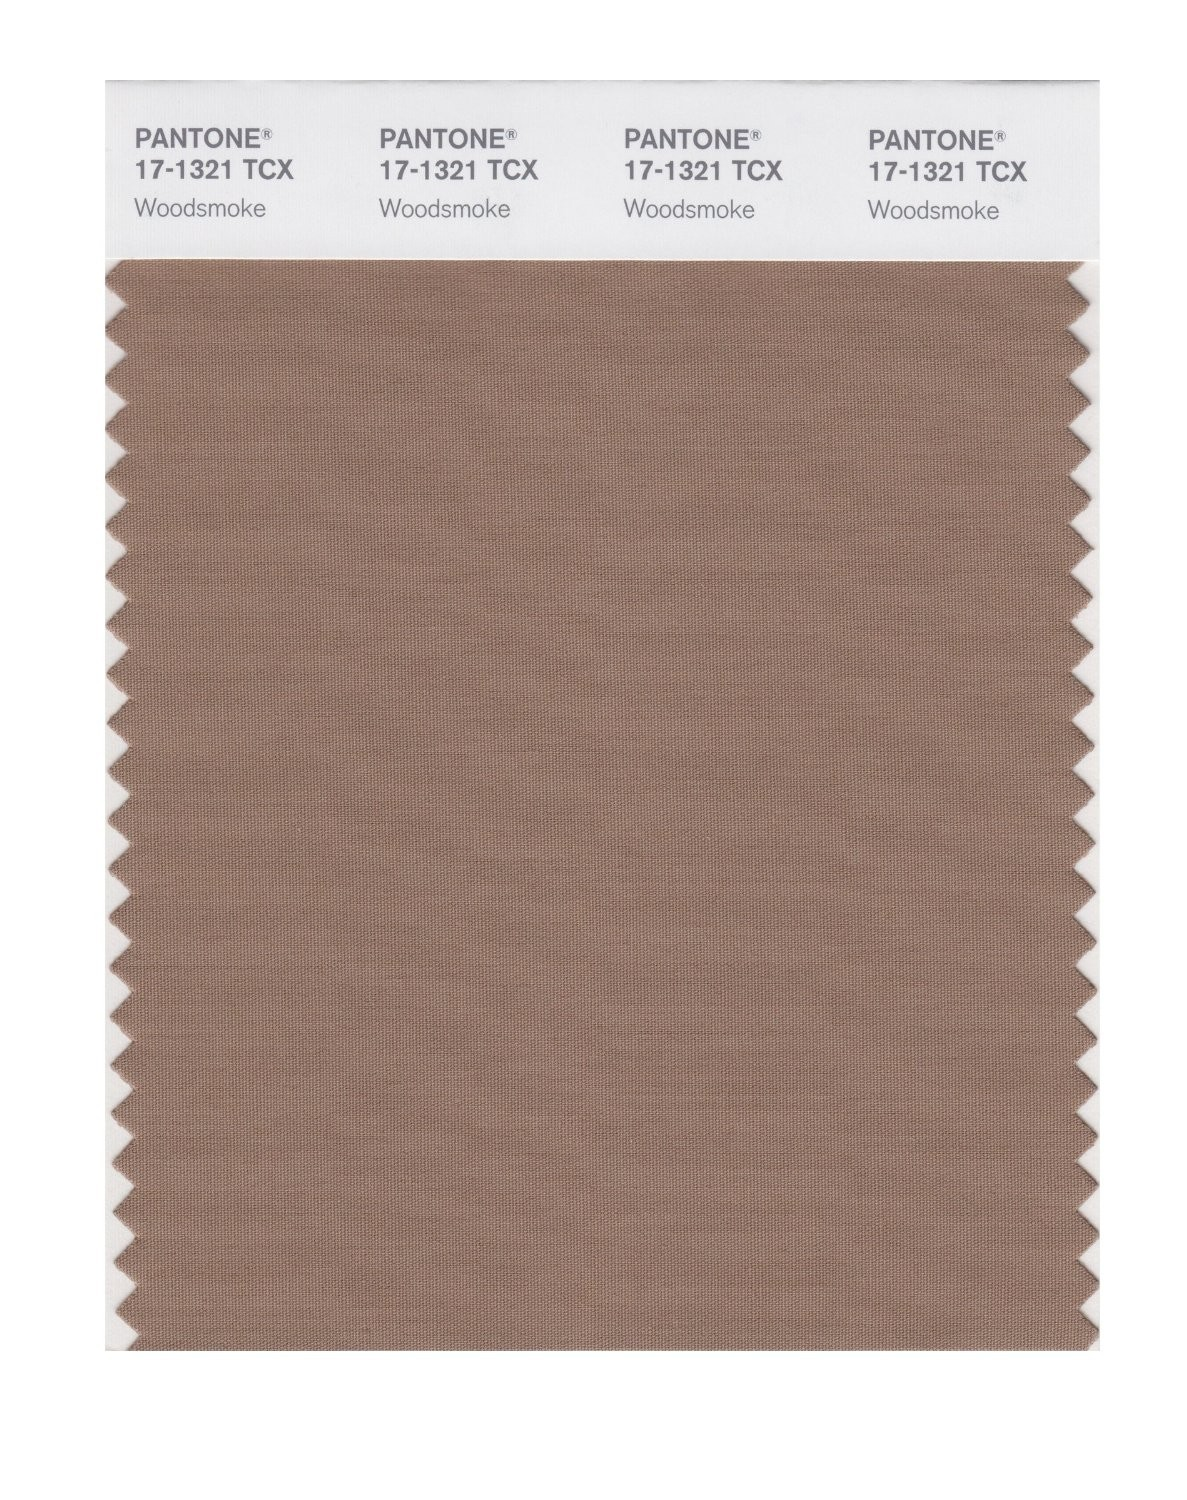 Pantone 17-1321 TCX Swatch Card Woodsmoke